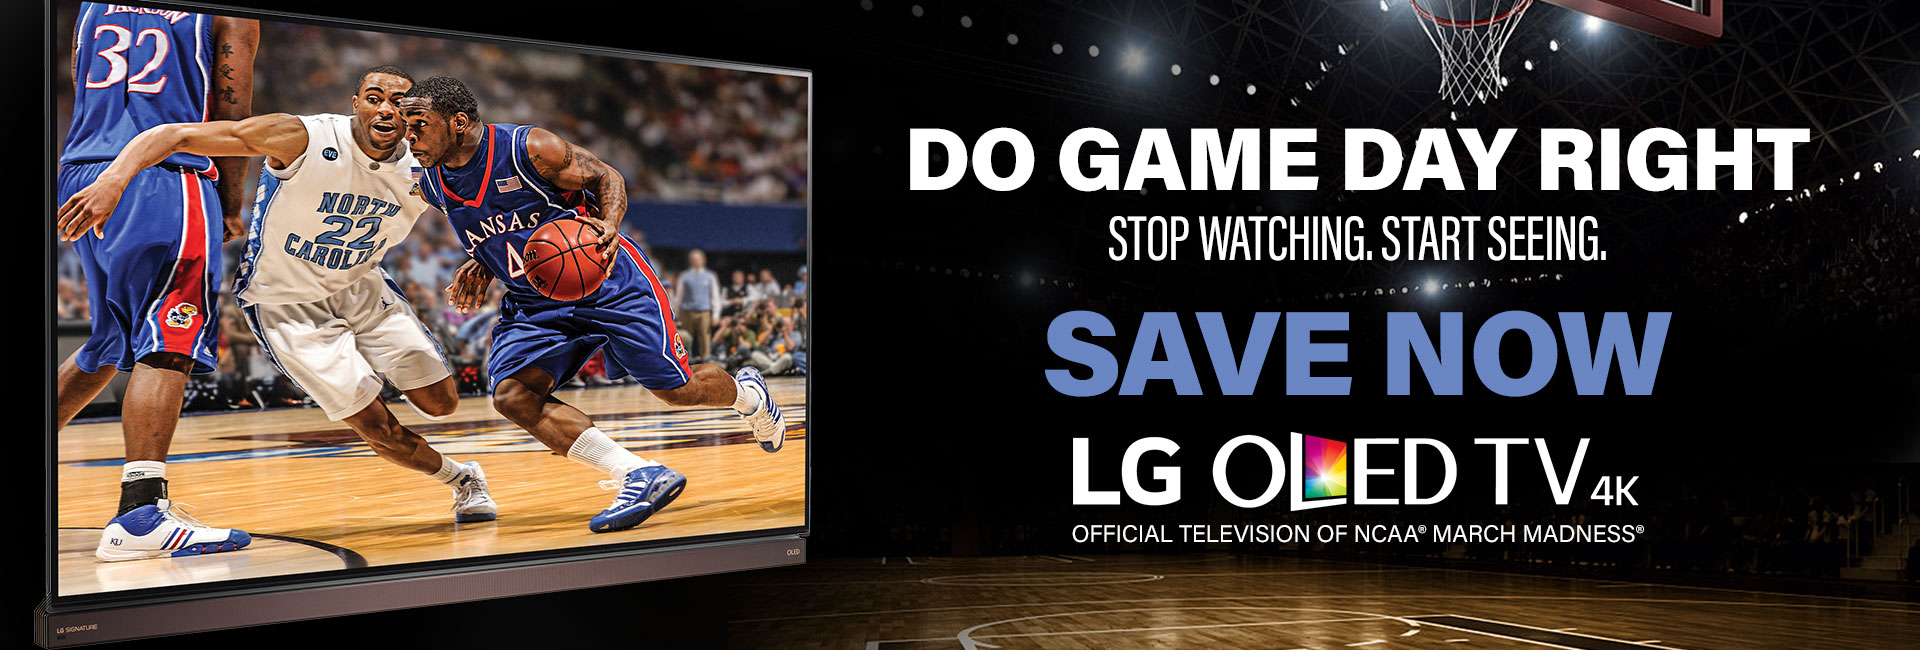 Do game day right. Save now on an LG OLED 4K TV